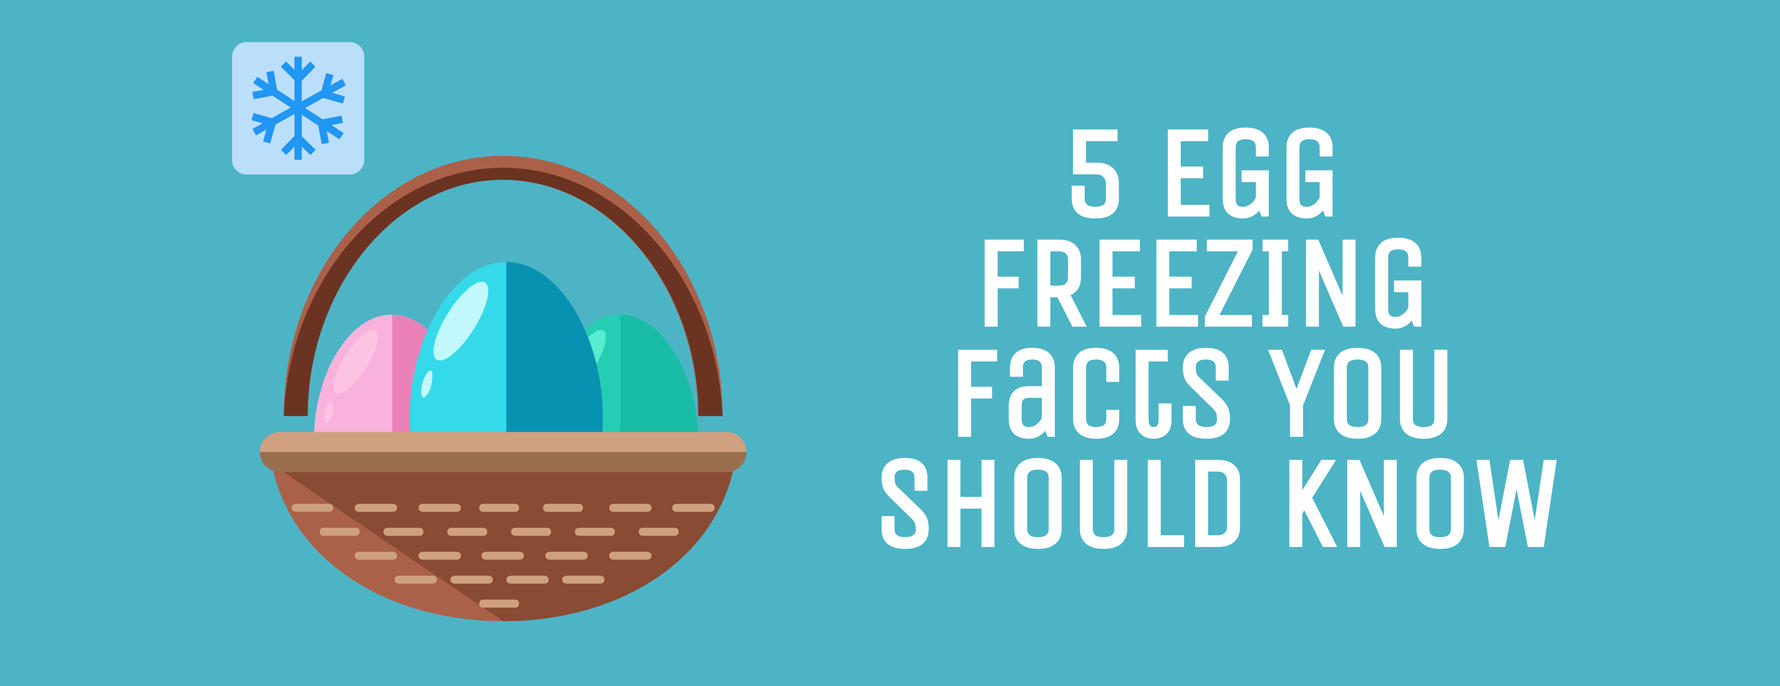 5 Egg Freezing Facts You Should Know